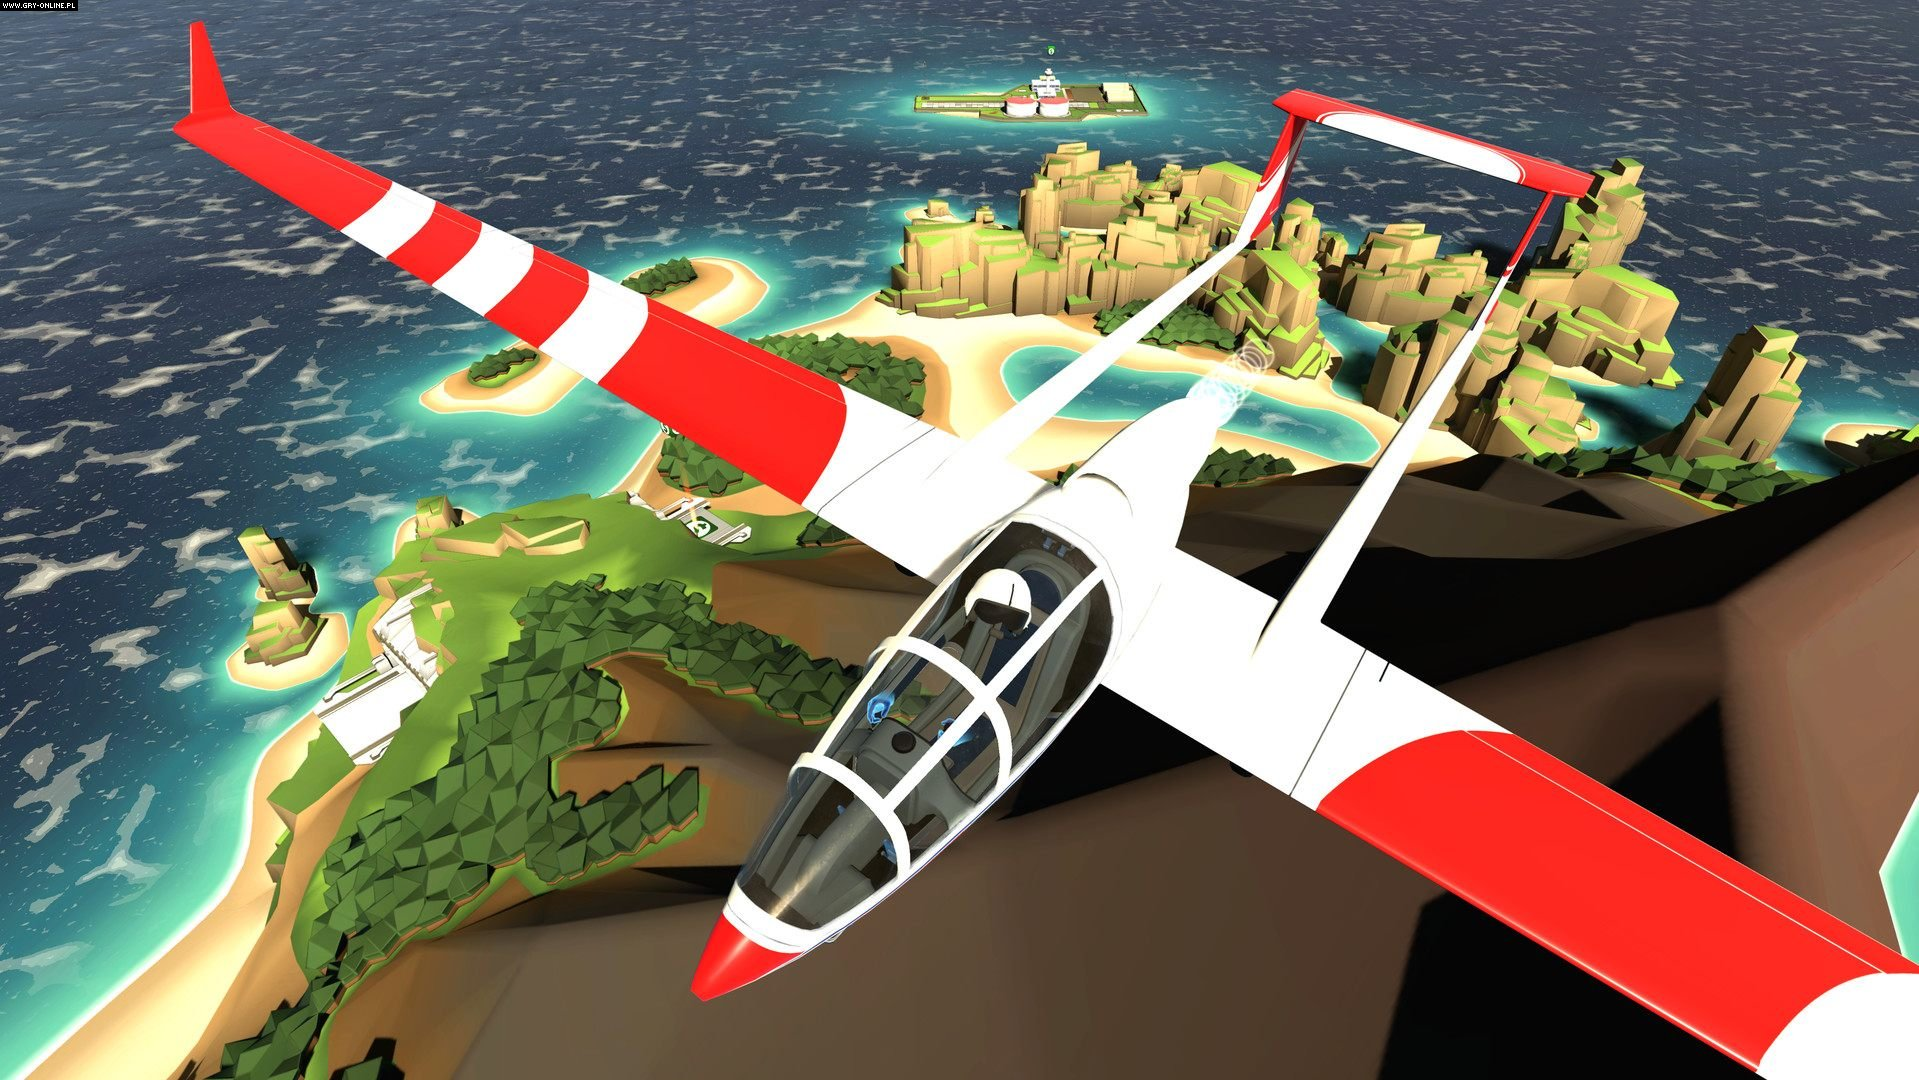 Ultrawings PC, PS4 Gry Screen 6/8, Bit Planet Games / Seamless Entertainment